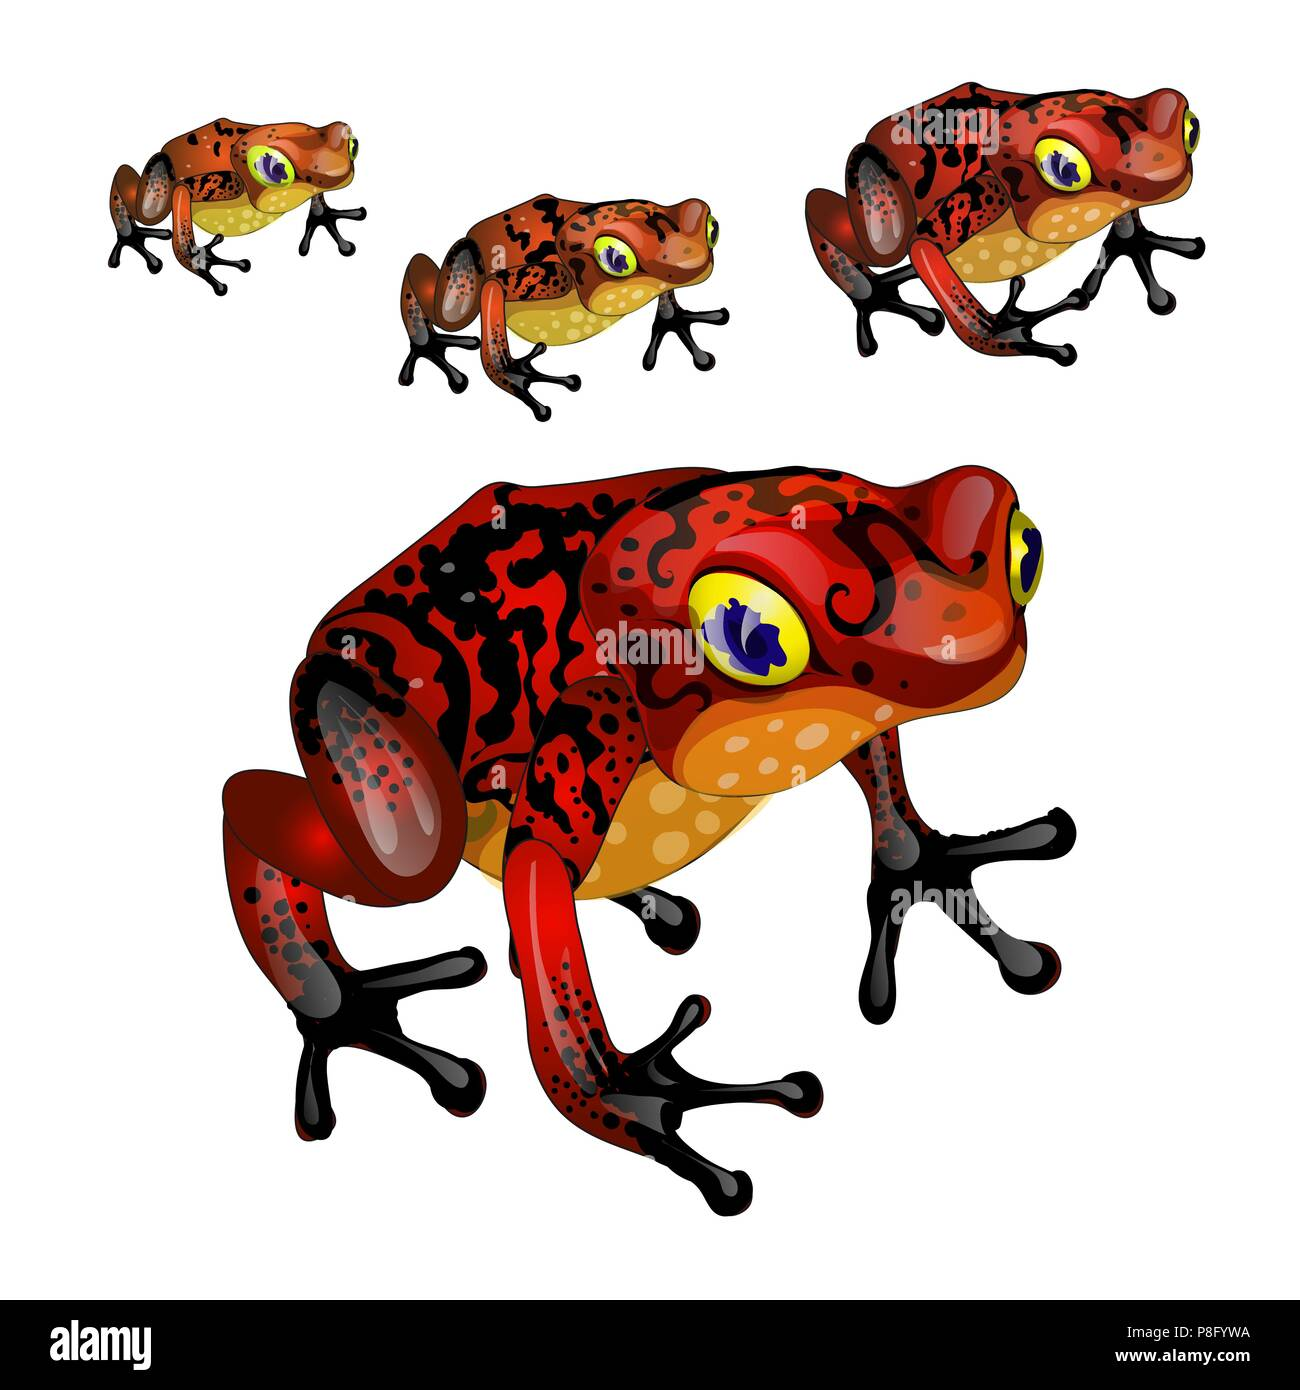 The growth stage of red poisonous frogs isolated on white background. Vector illustration. - Stock Vector